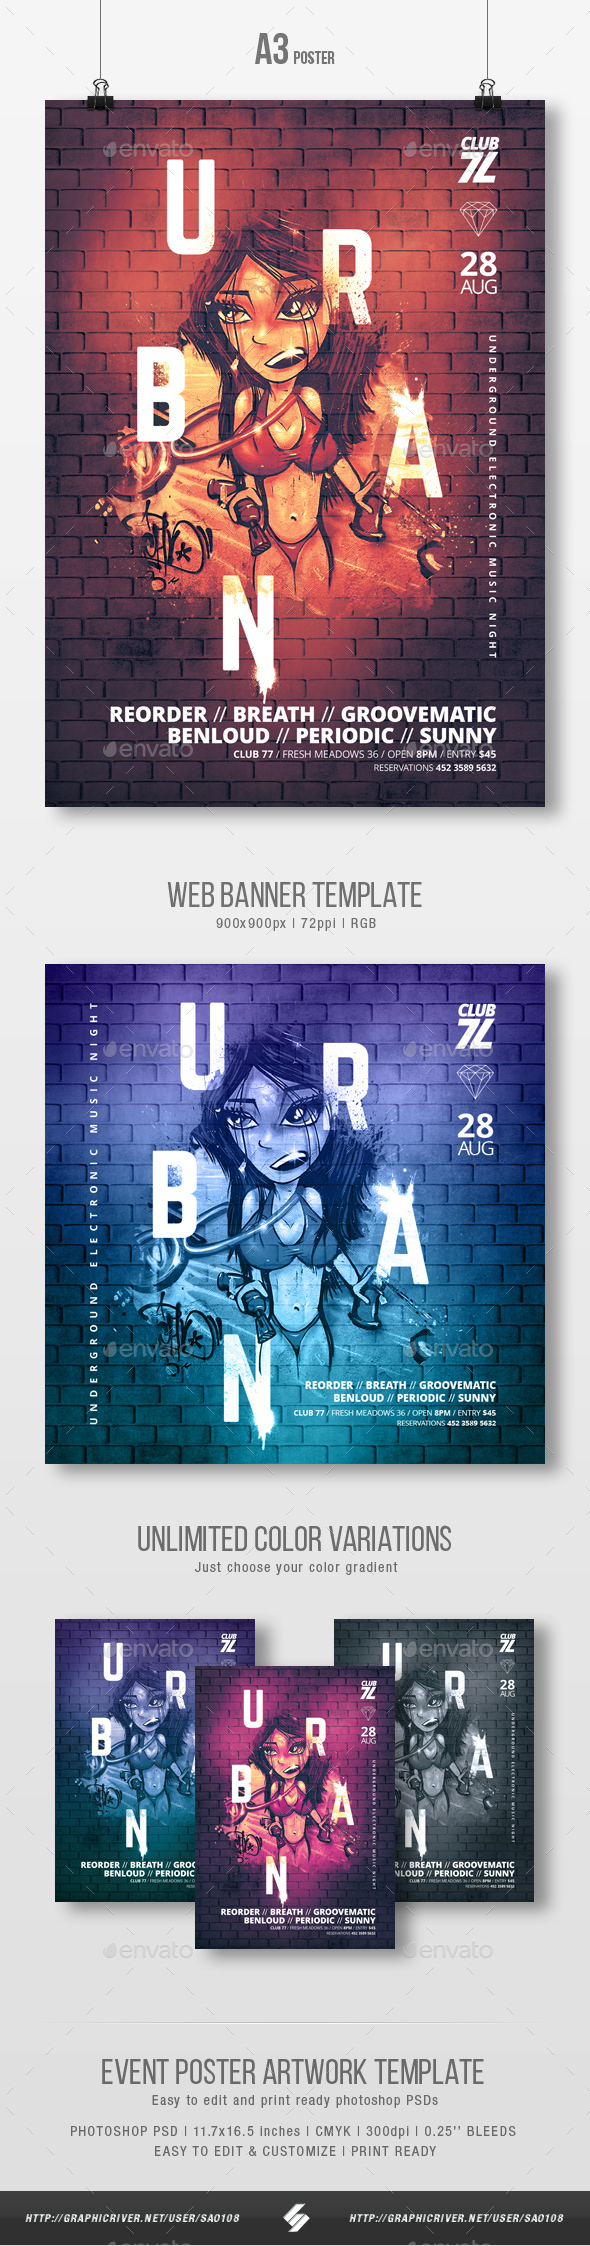 Urban - Graffiti Party Flyer / Poster Artwork Template A3 - Clubs & Parties Events